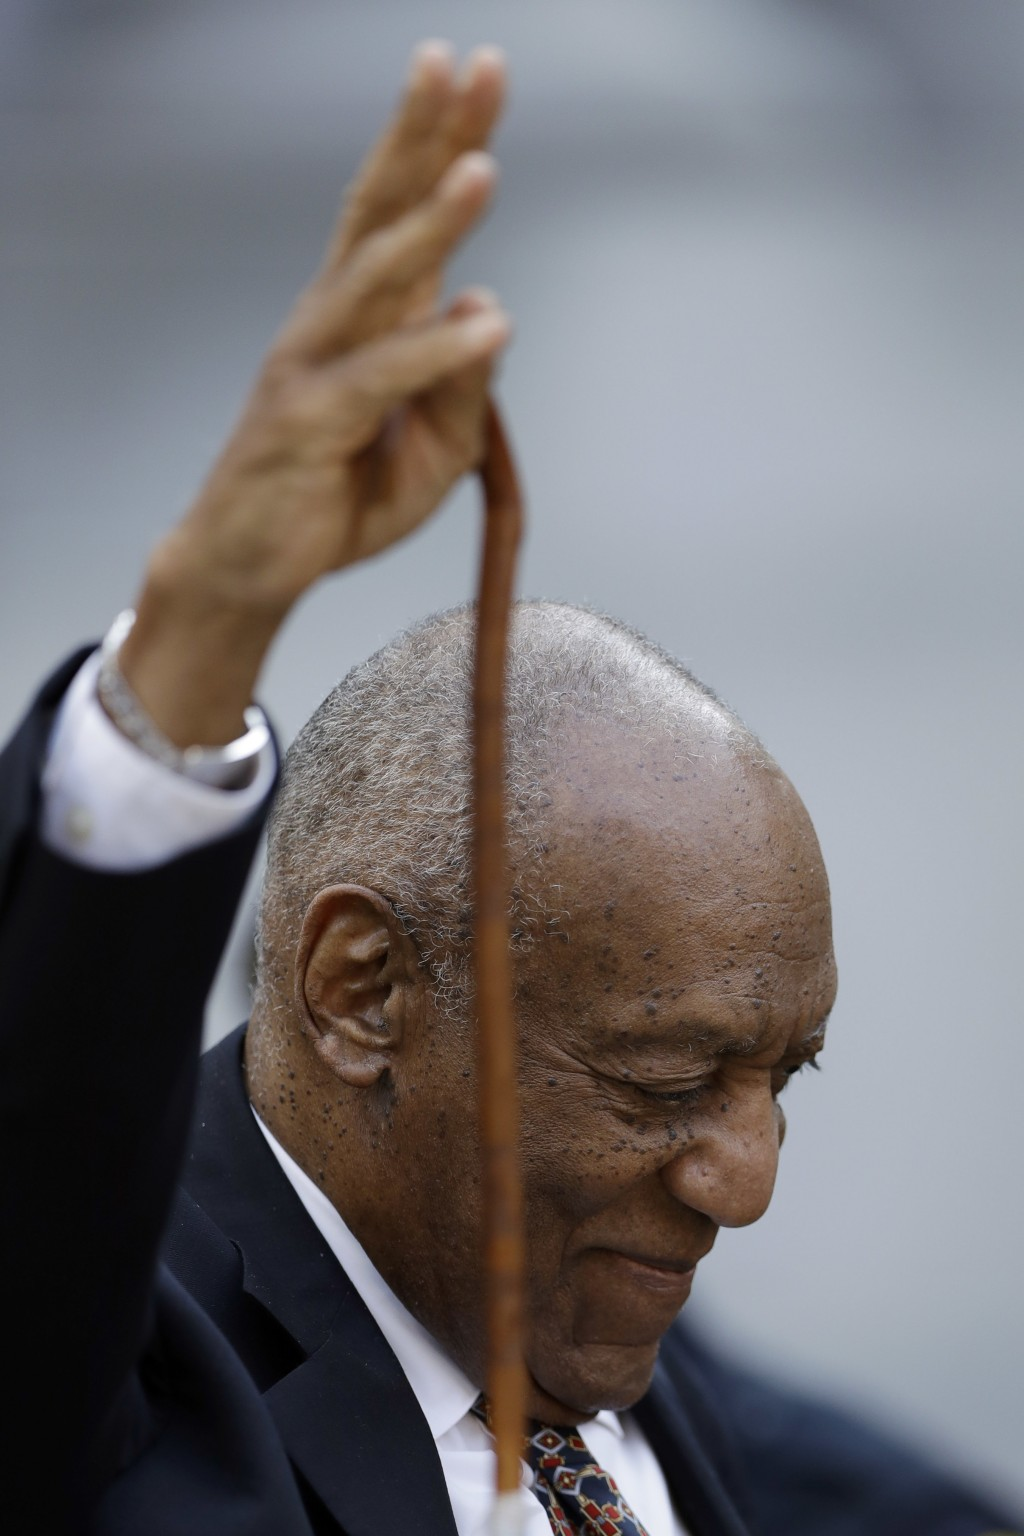 Bill Cosby waves as he departs his sexual assault trial, Friday, April 13, 2018, at the Montgomery County Courthouse in Norristown, Pa. (AP Photo/Matt